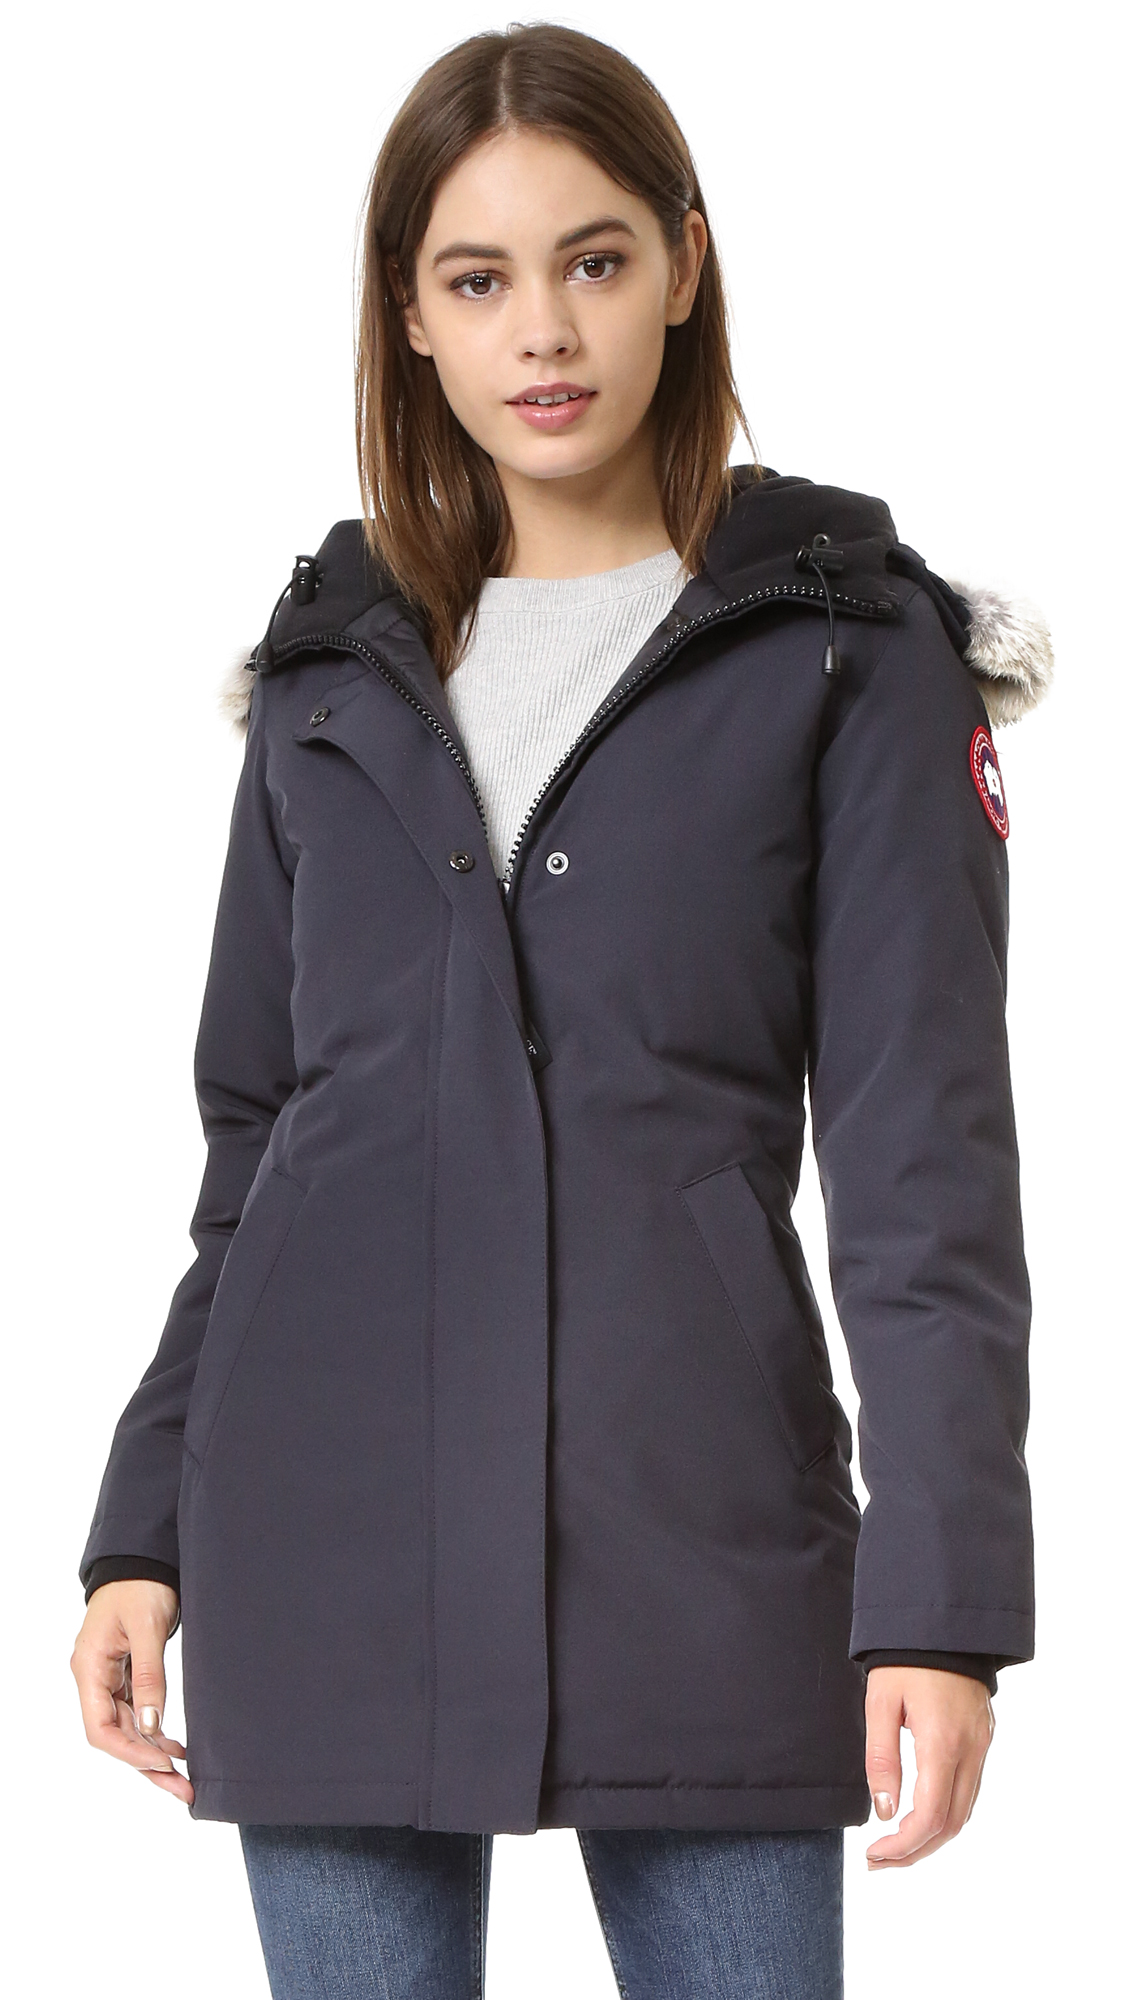 canada goose jackets canada goose women 39 s jackets. Black Bedroom Furniture Sets. Home Design Ideas